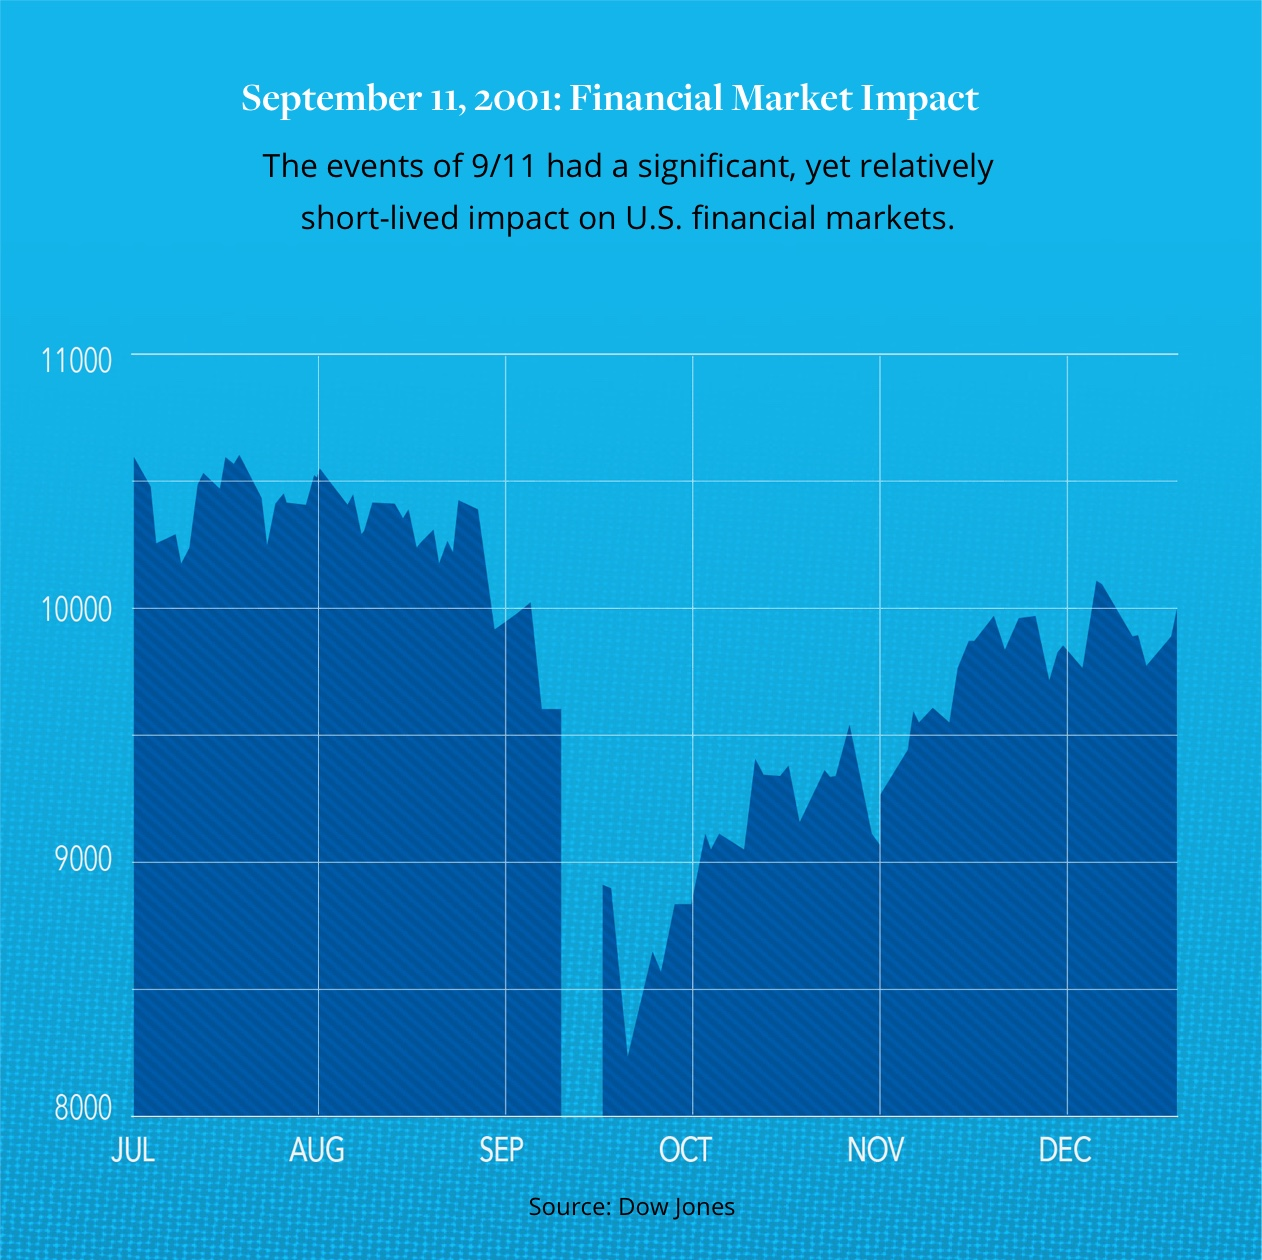 September 11 Financial Market Impact